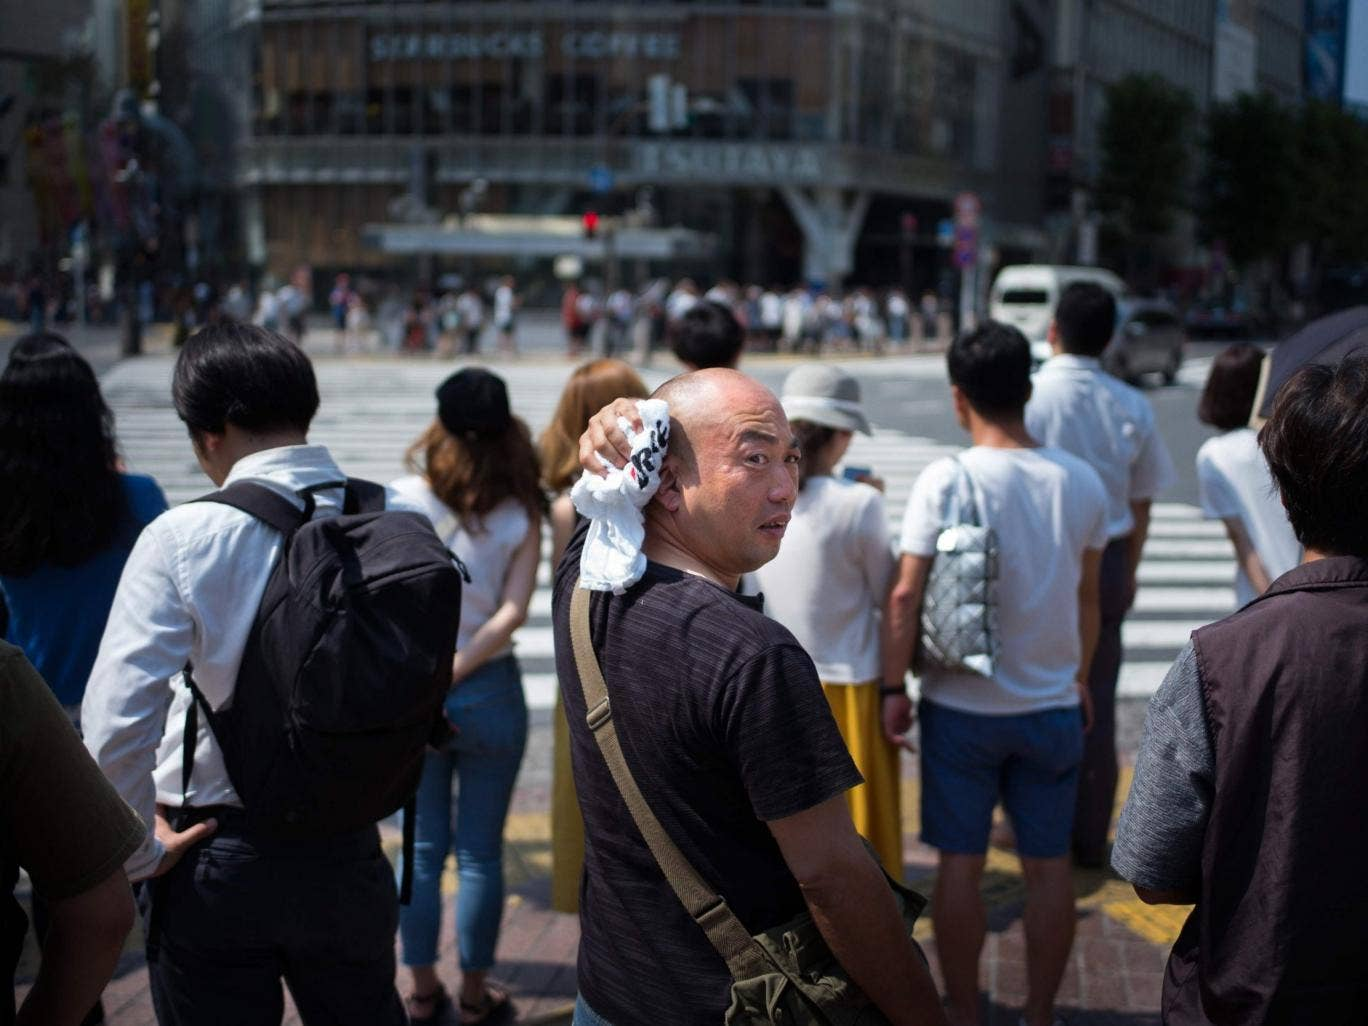 Liberal jewish views on homosexuality in japan